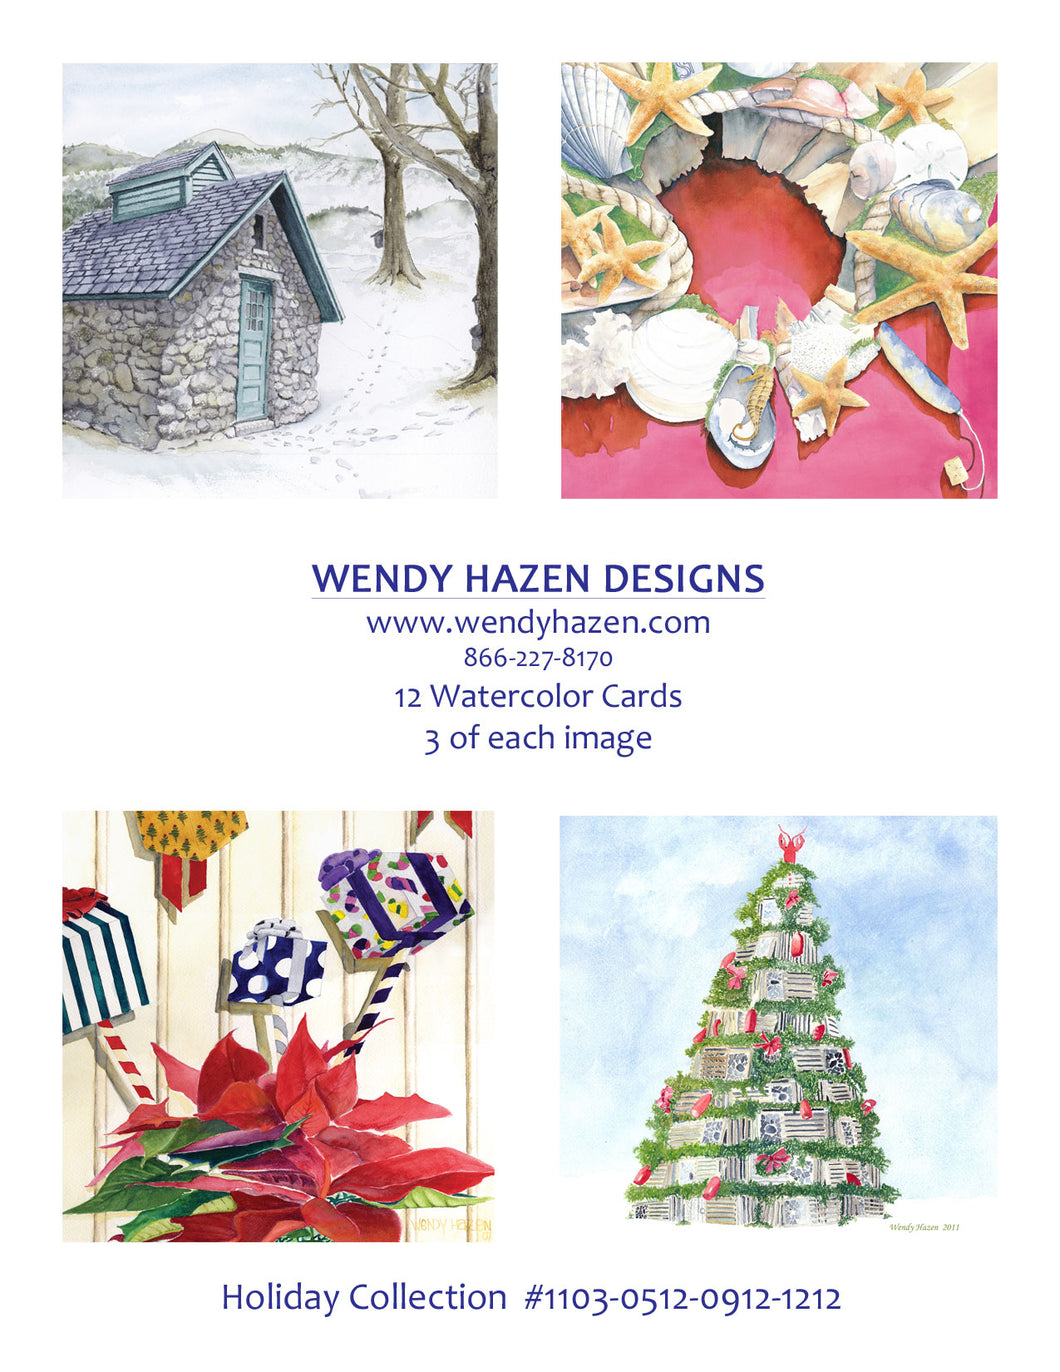 2020 Holiday Card ~ Sugar Shack, Shell Wreath, Lobstertrap Tree, Present Motif